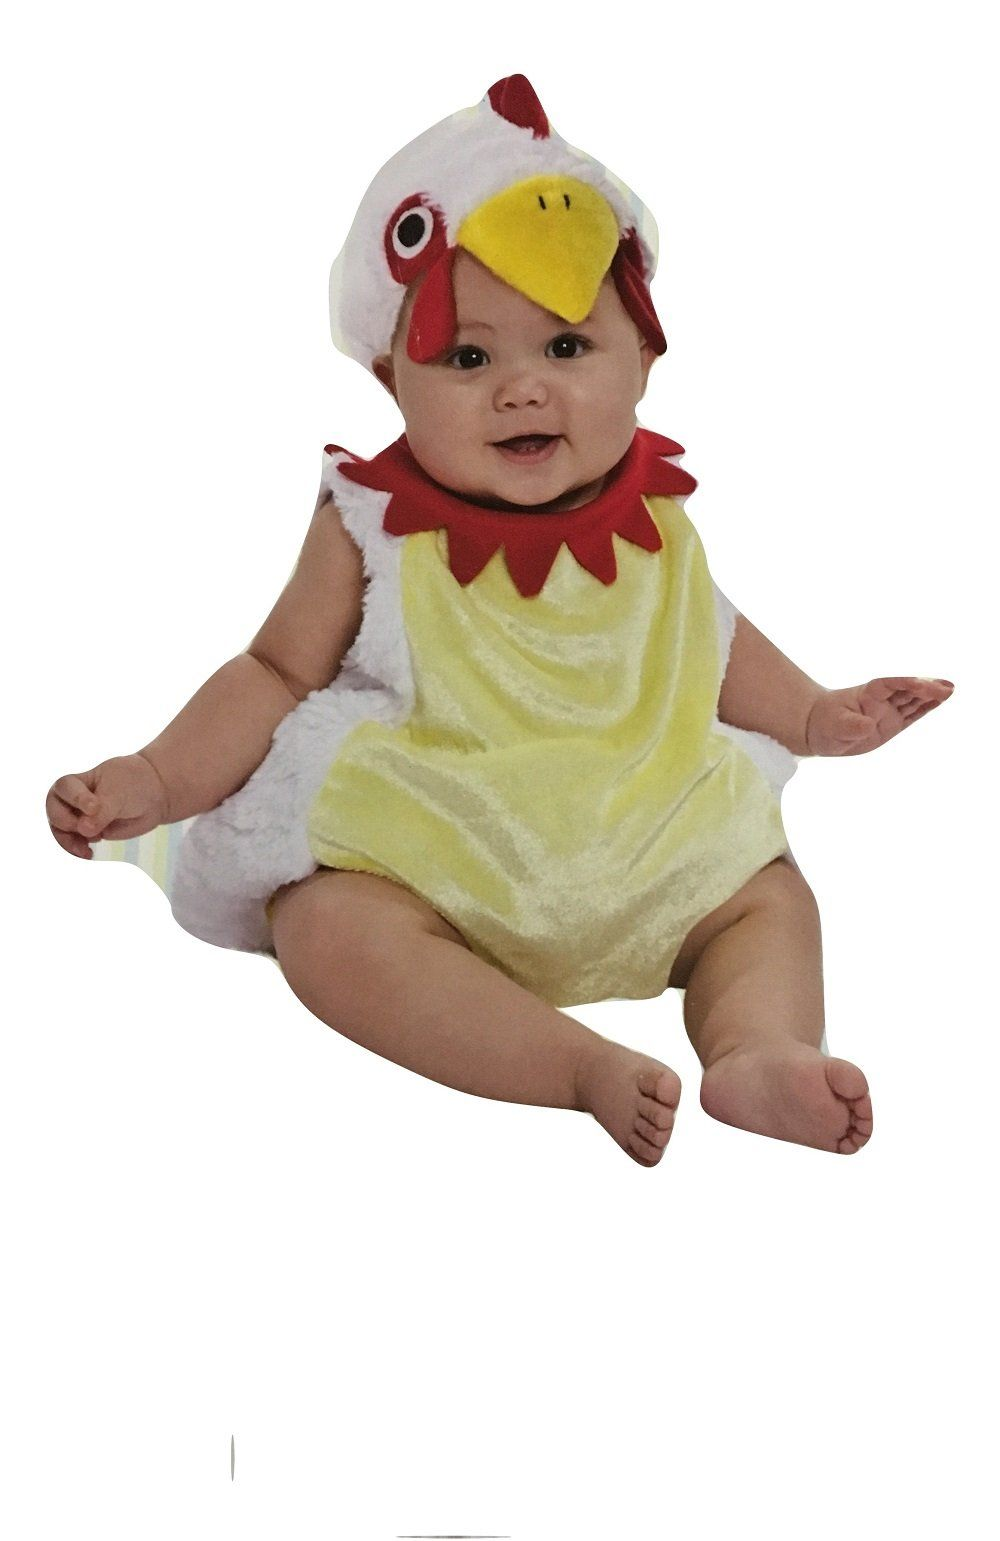 boo babies halloween costume chicken nugget sz 0 9 months 3 pieces white red - Boo Halloween Costumes